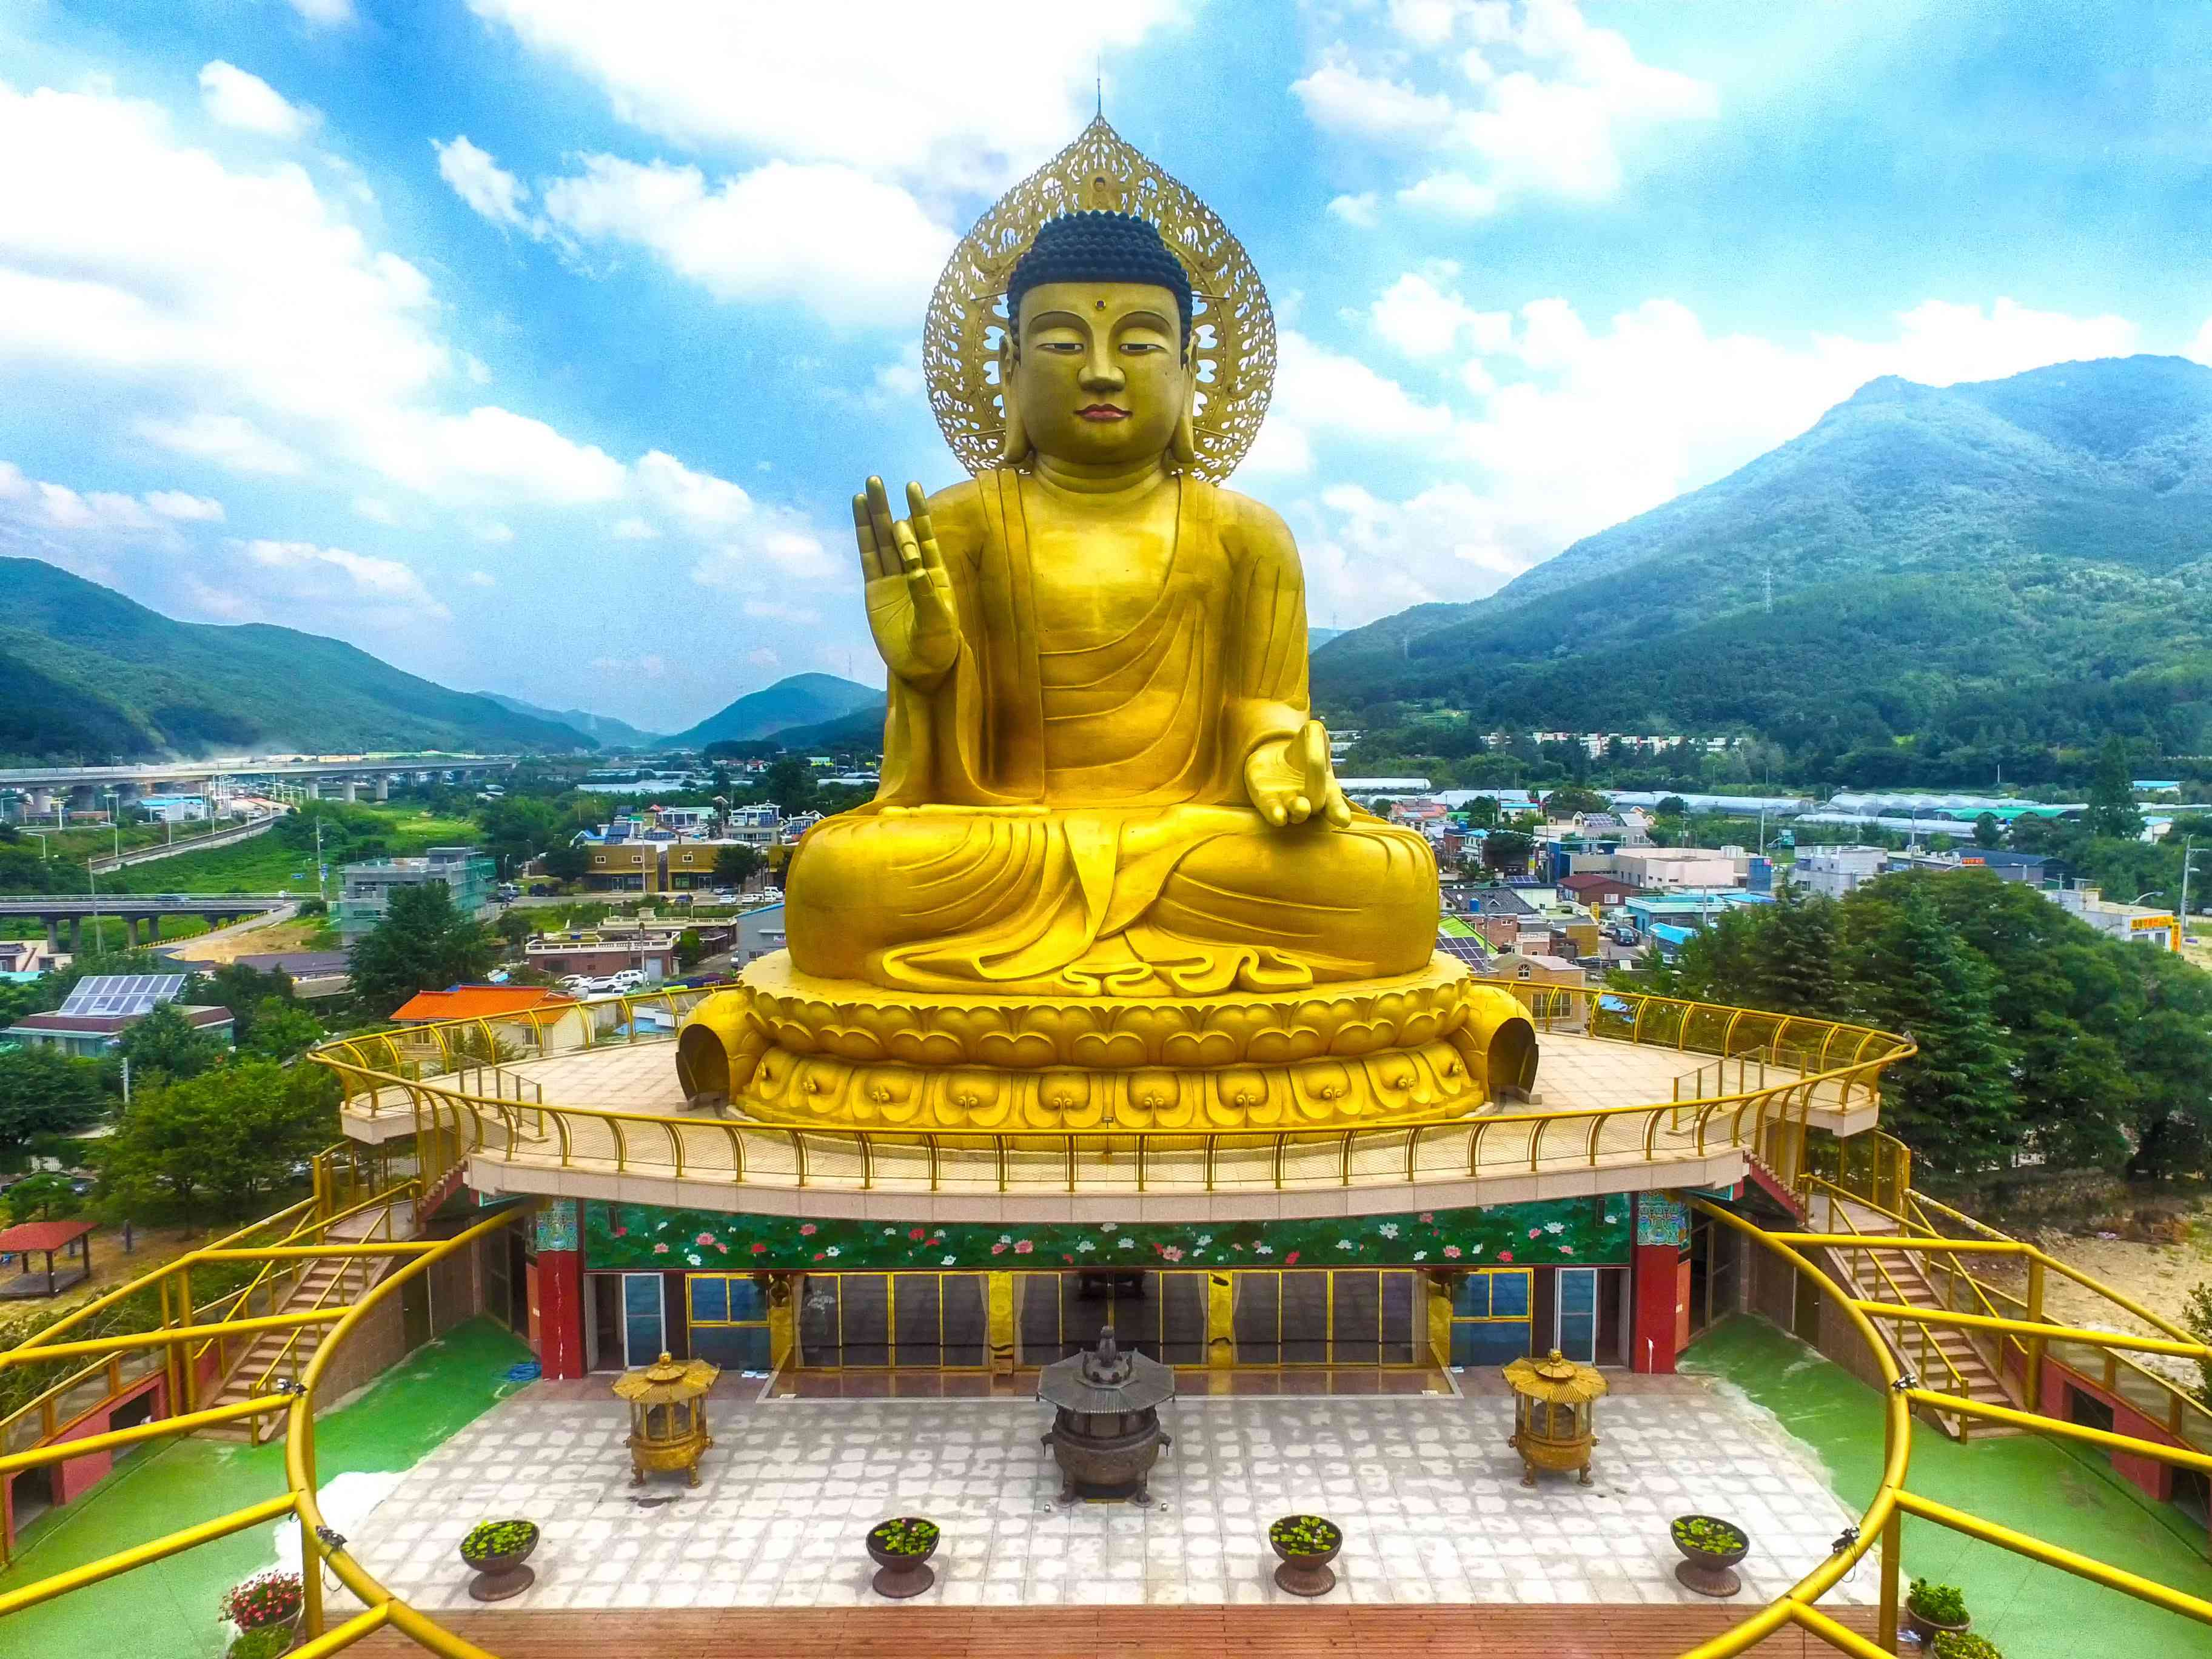 Aerial view of Massive Buddha statue at Hongbeopsa Temple in Busan, South Korea, Asia